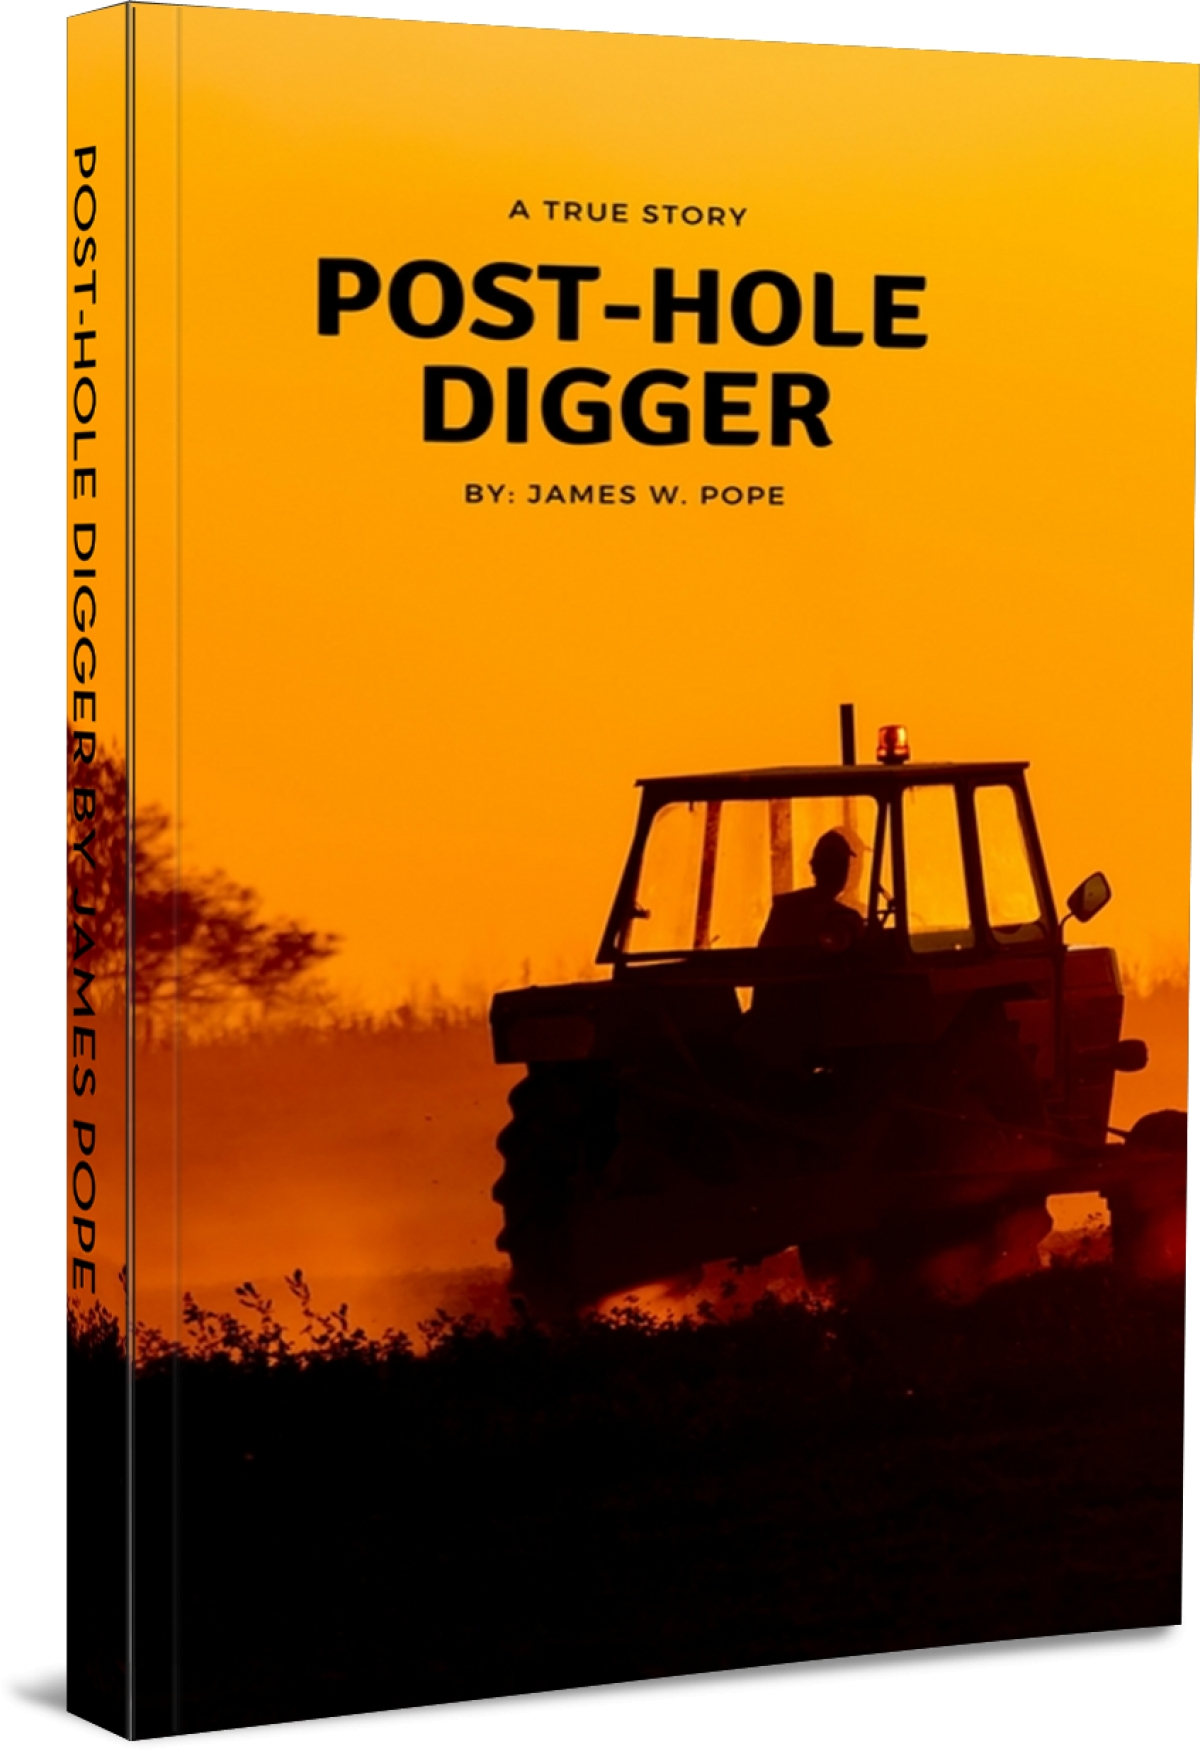 Post Hole Digger